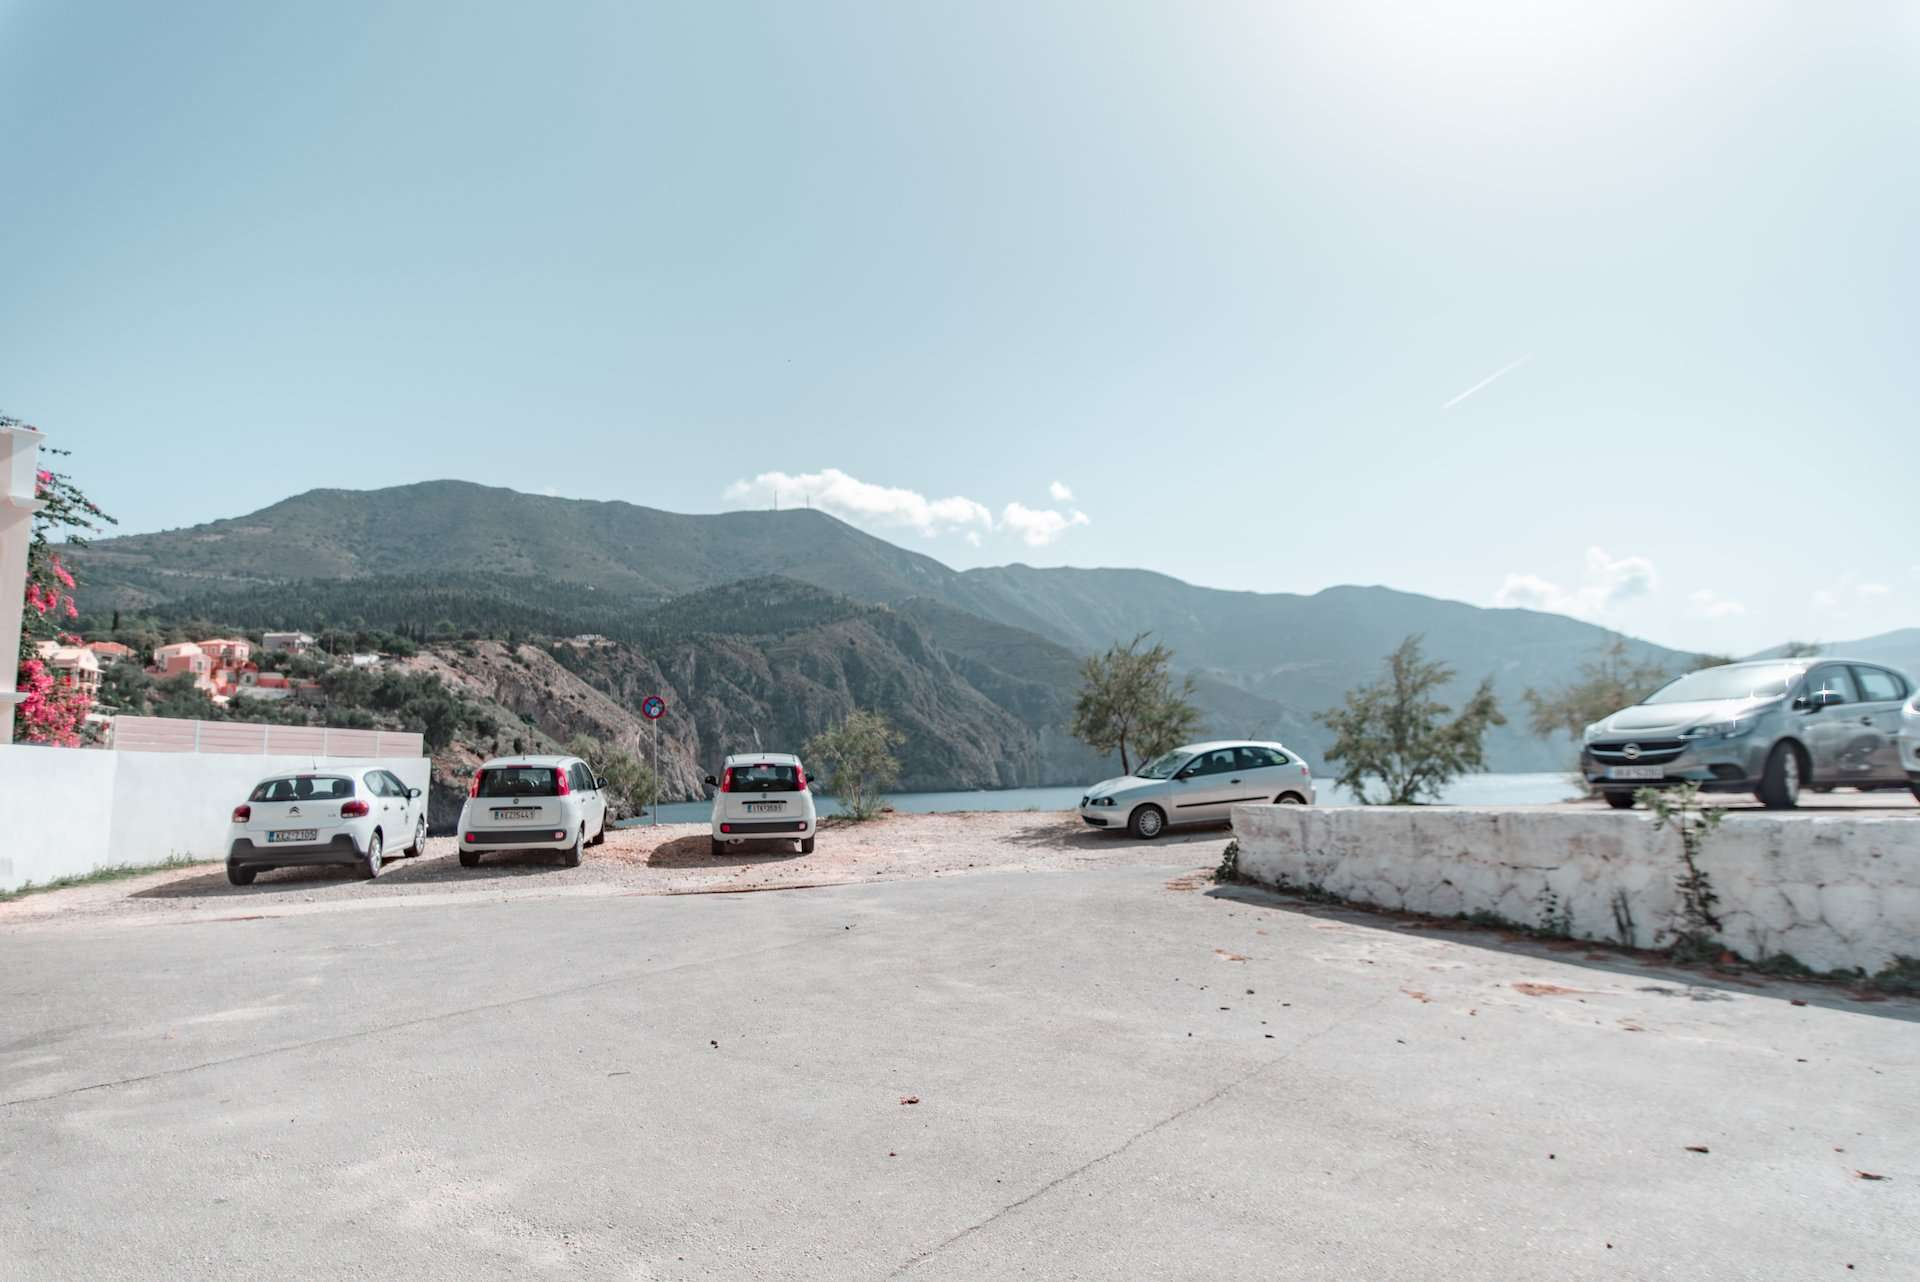 Assos, Kefalonia parking lot